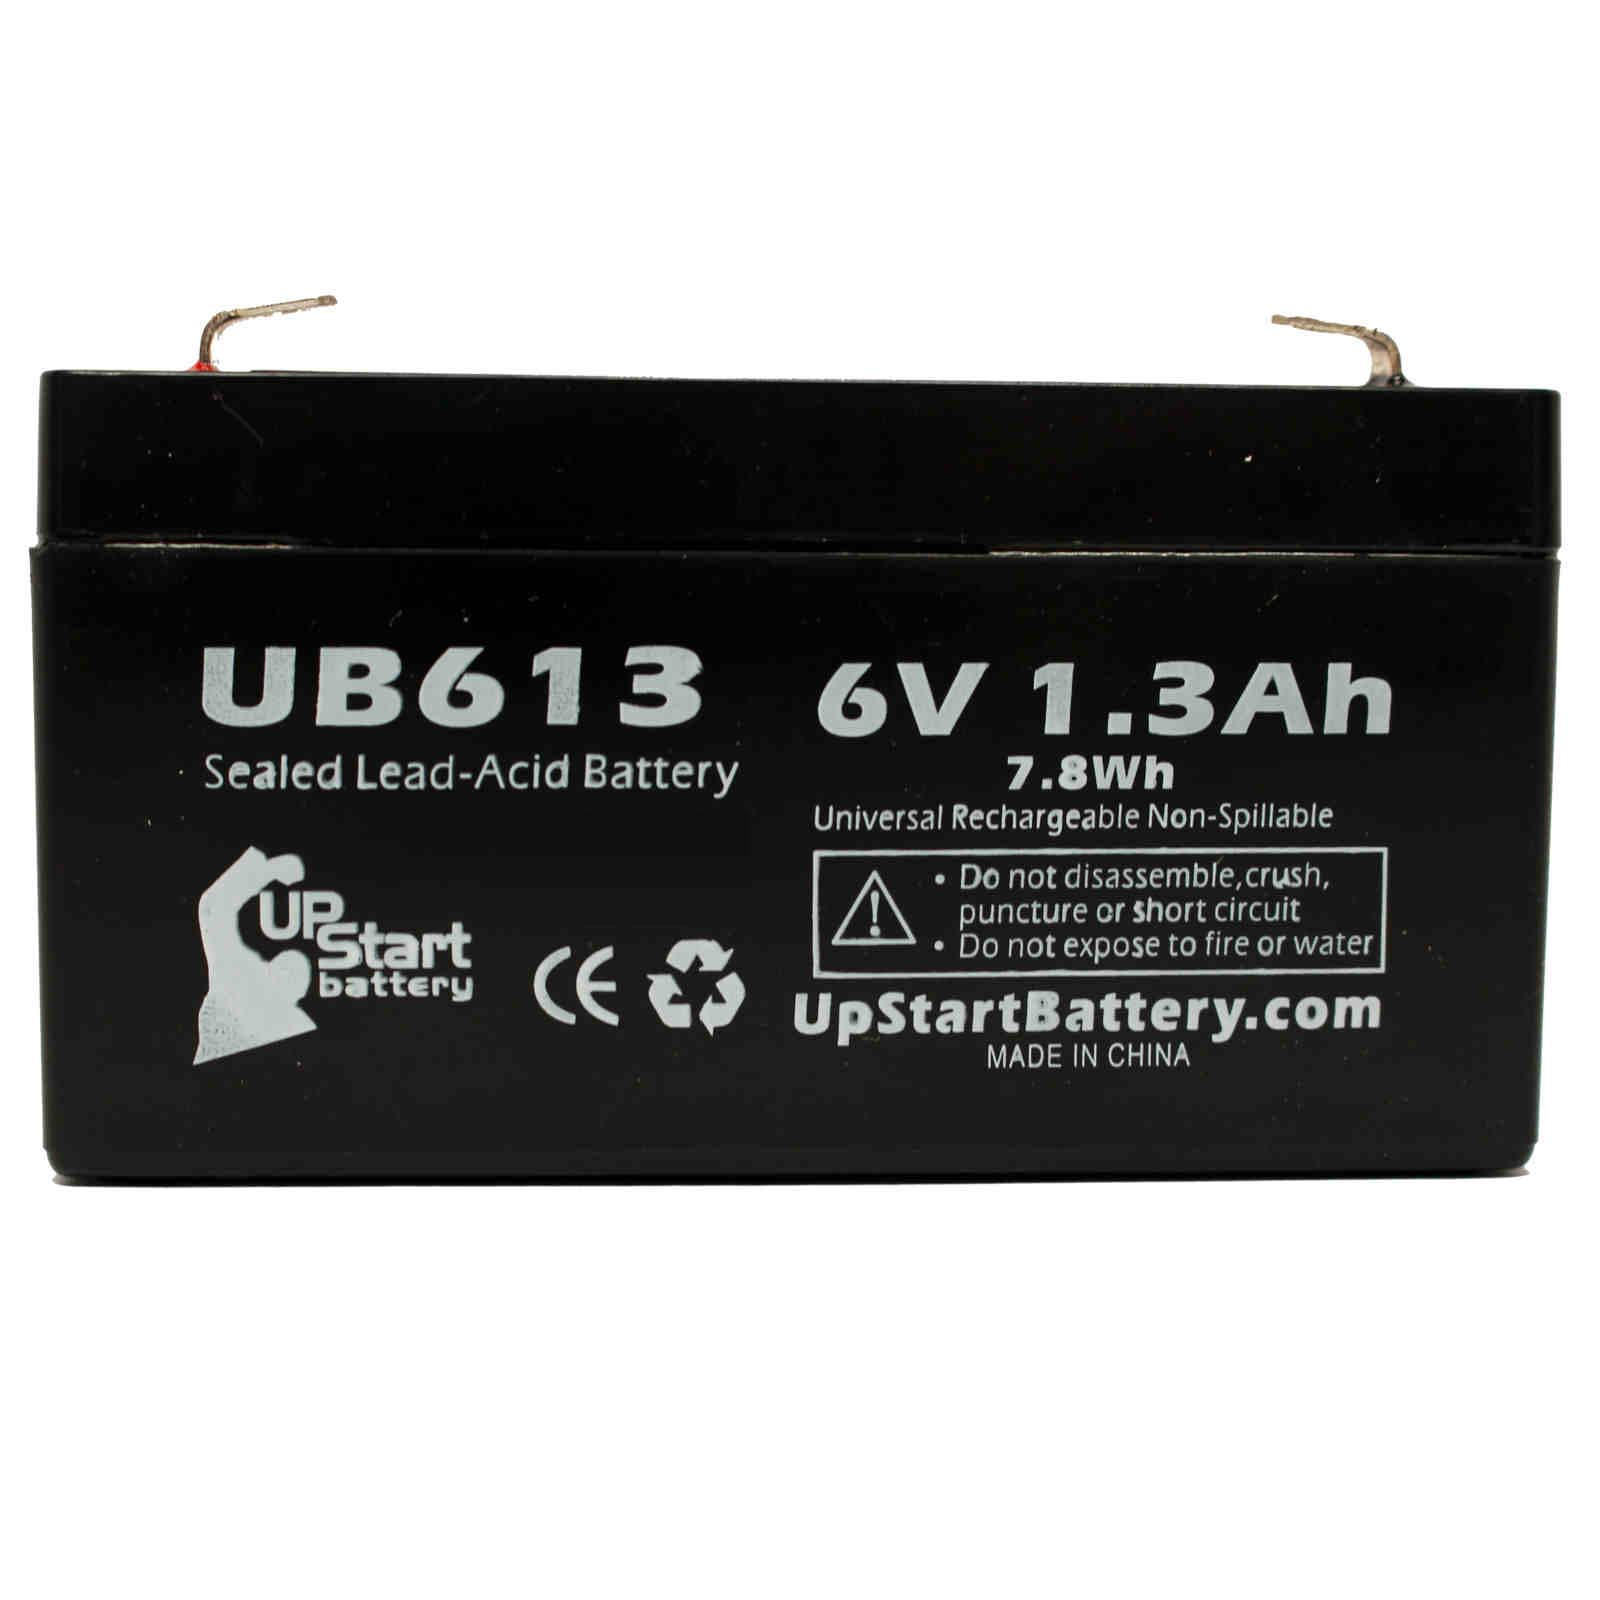 ACME MEDICAL 2500 SCALE OPTION Battery Replacement - UB613 Universal Sealed Lead Acid Battery (6V, 1.3Ah, 1300mAh, F1 Terminal, AGM, SLA) - Includes TWO F1 to F2 Terminal Adapters - image 3 de 4